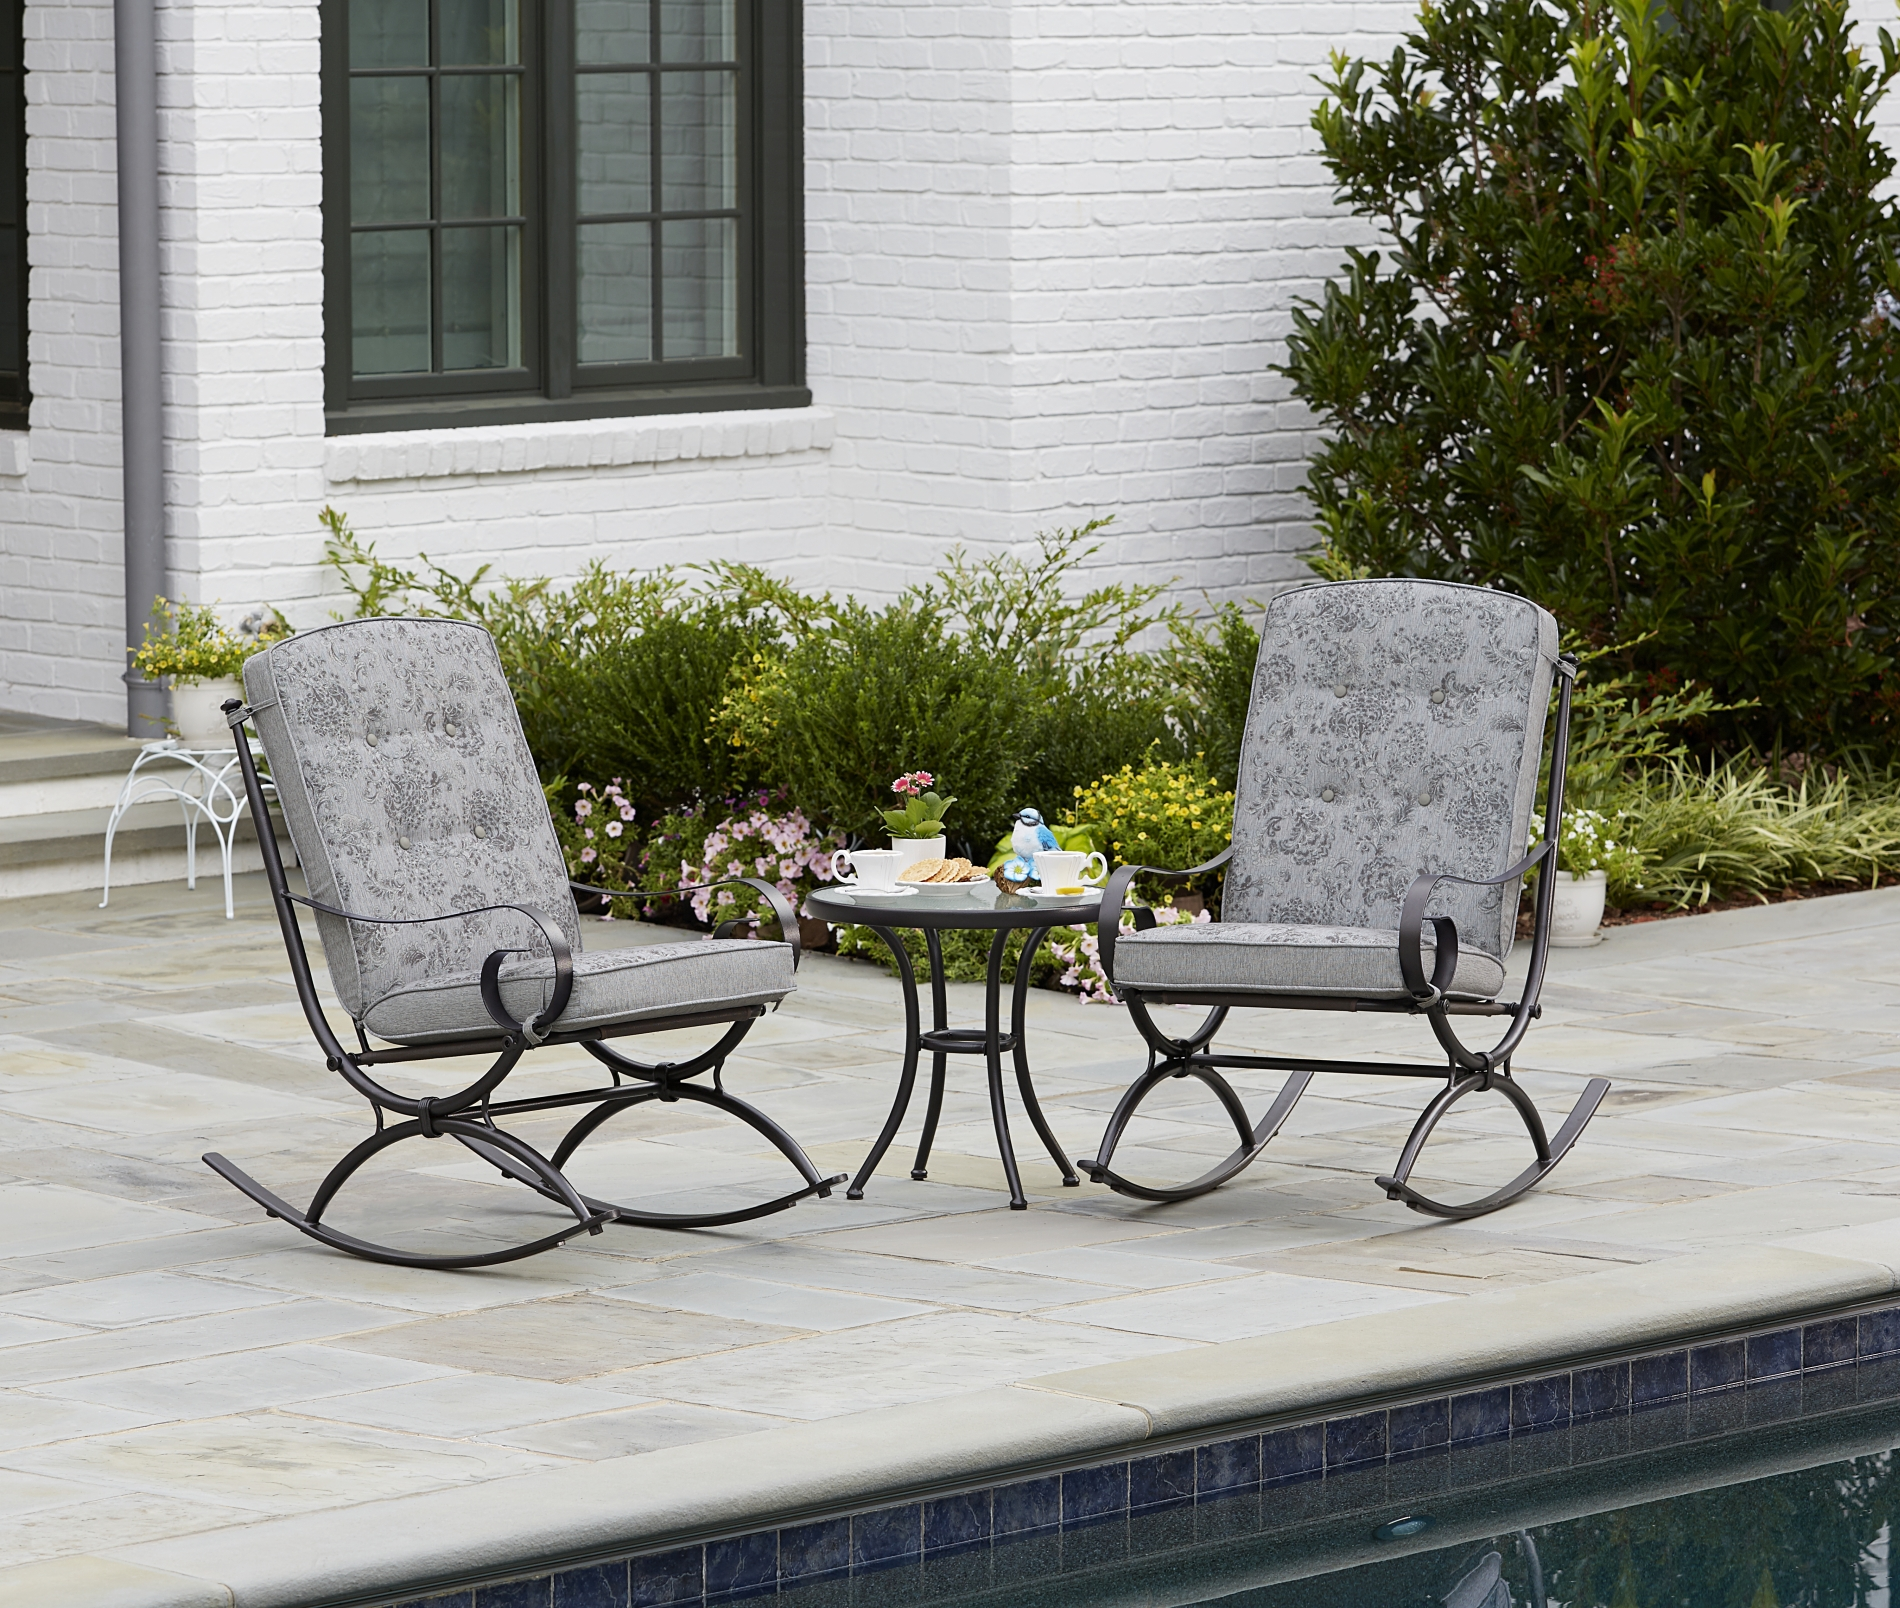 Bistro Sets jaclyn smith centralia 3-piece rocking patio bistro set - gray reversible  cushion FQZJWLD